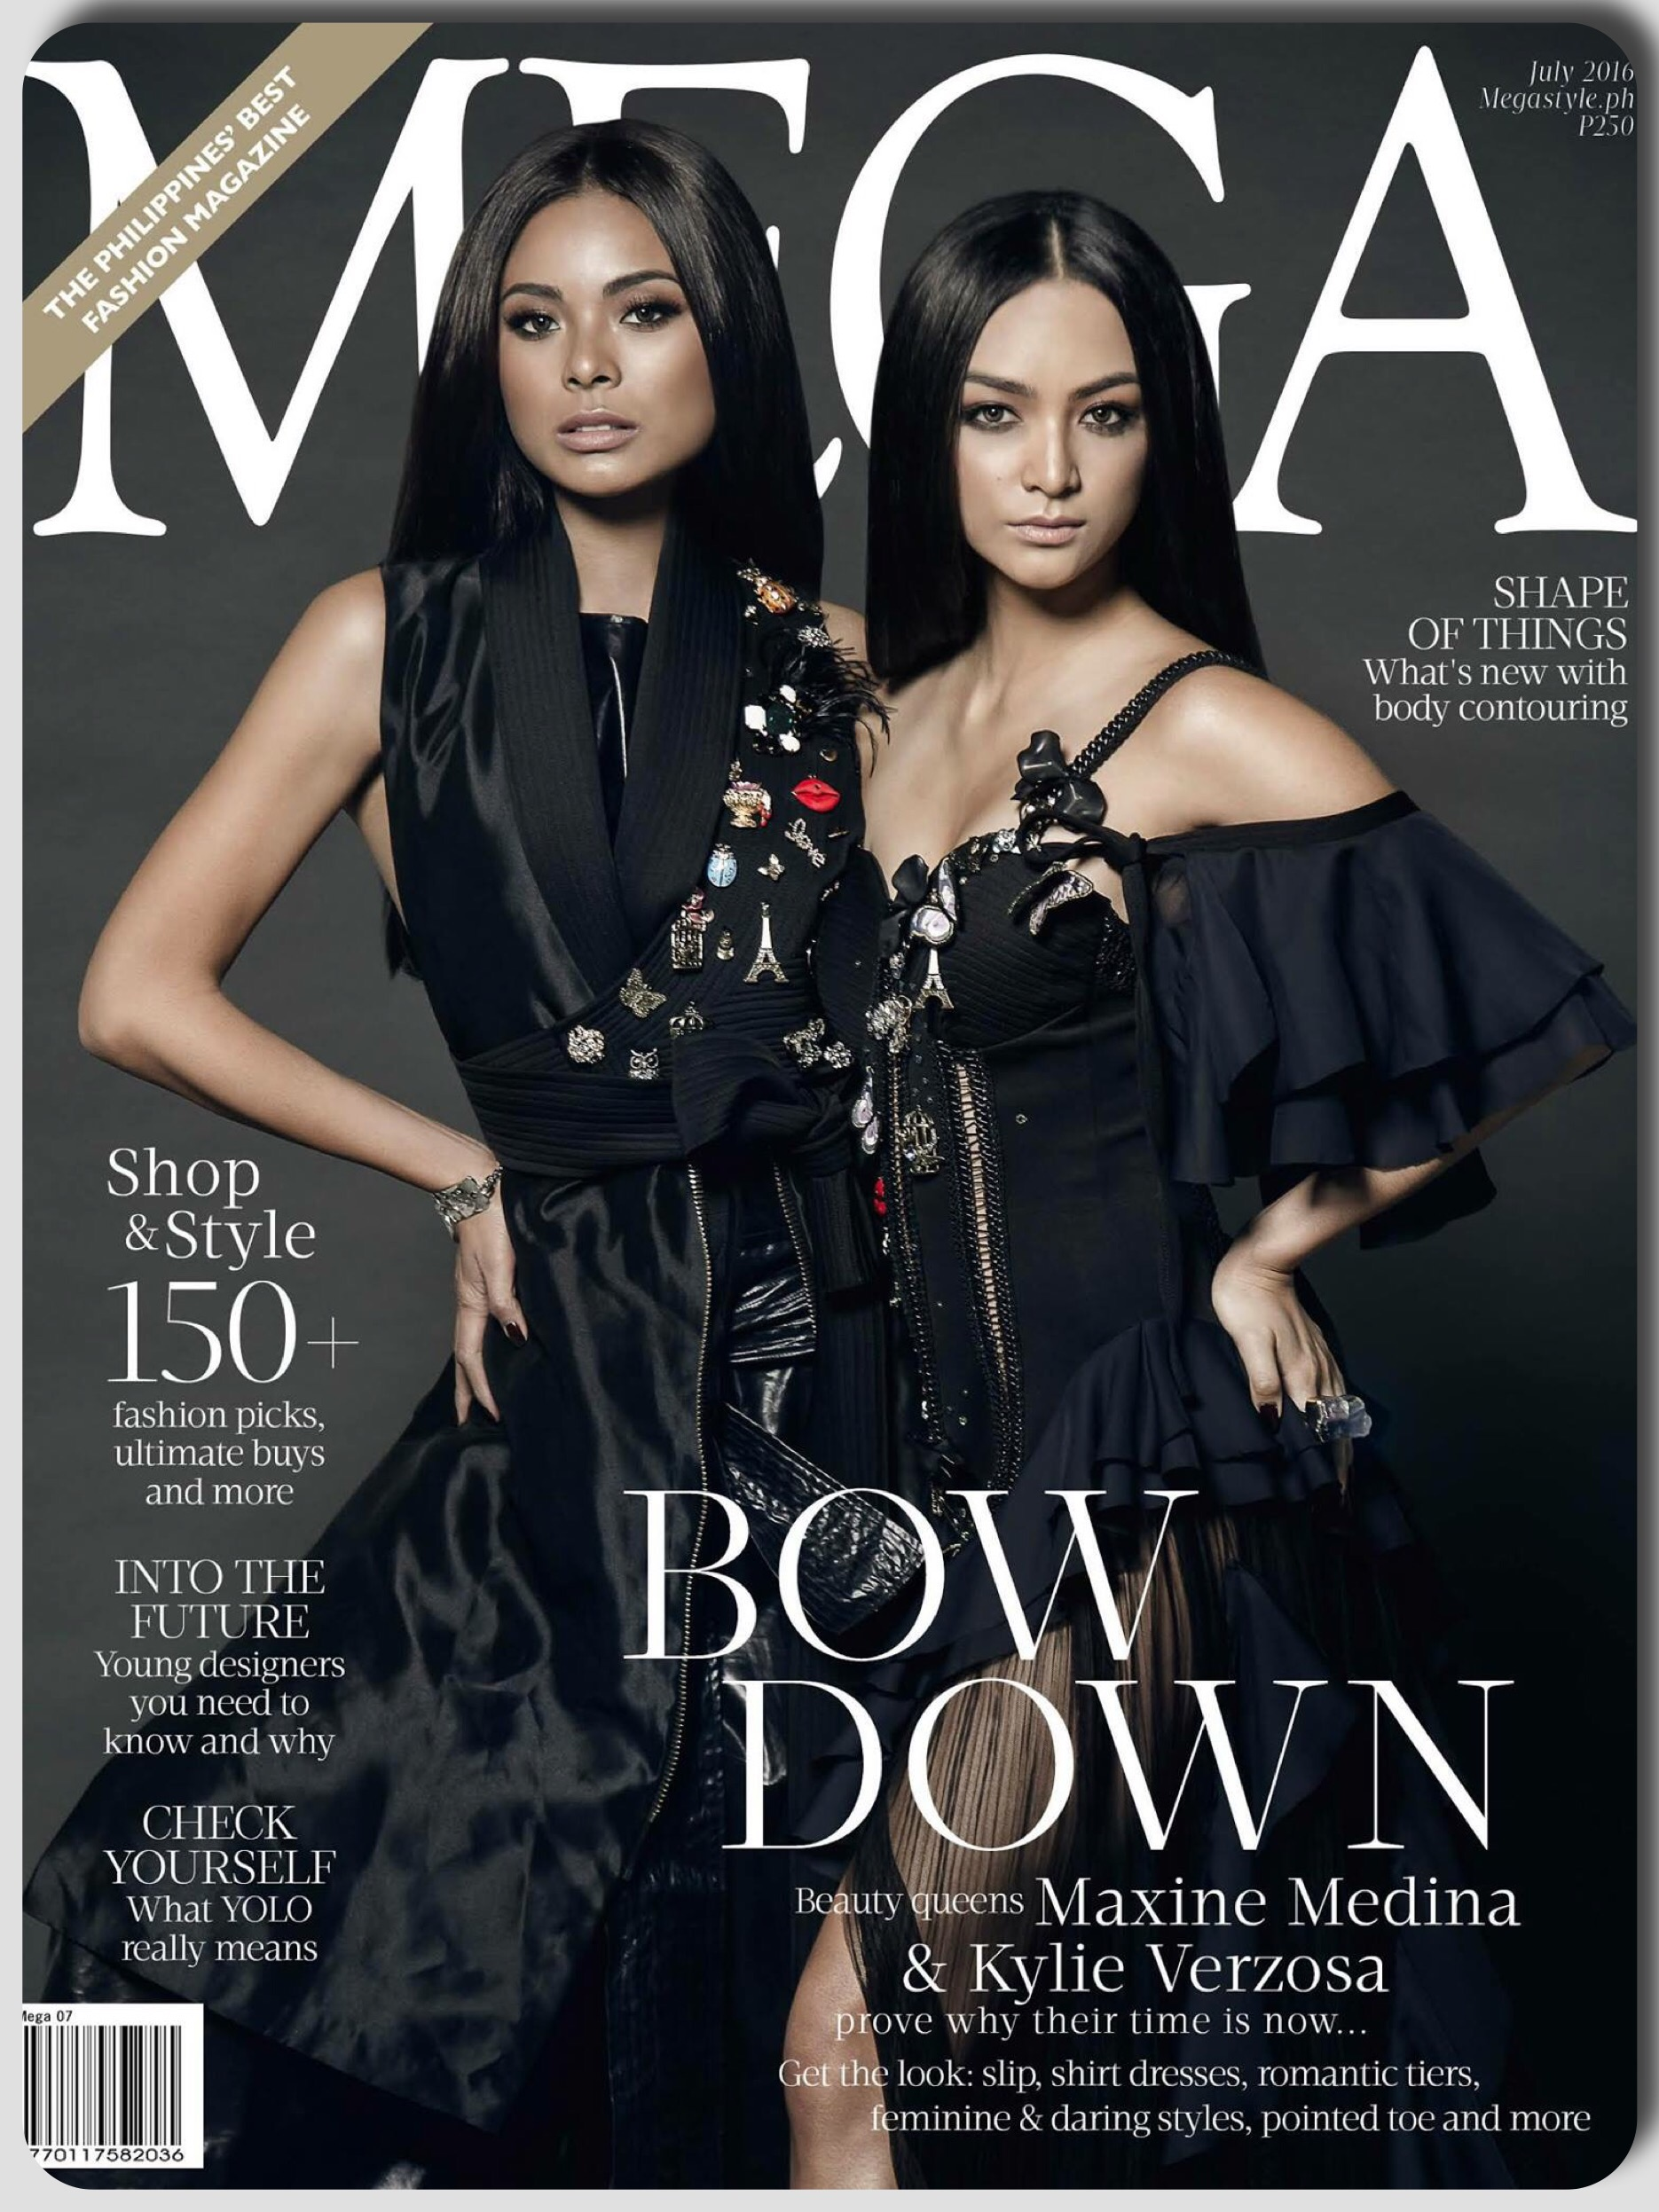 Two Queens And A Mega Magazine Cover